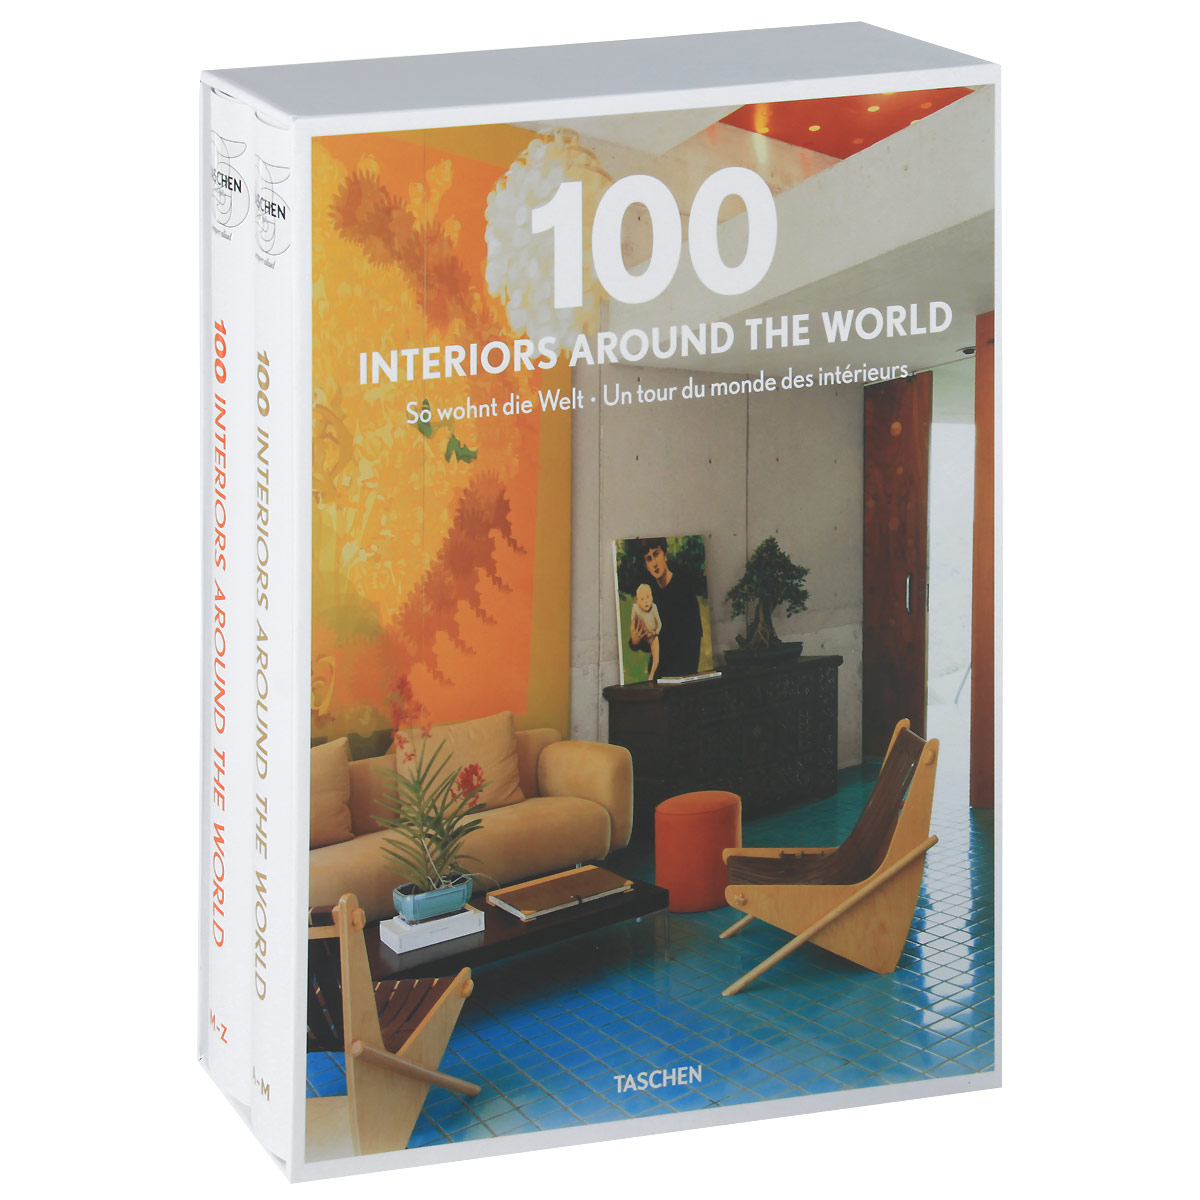 100 Interiors Around the World / So wohnt die Welt / Un tour du monde des interieurs (комплект из 2 книг) игрушки животные tour the world schleich